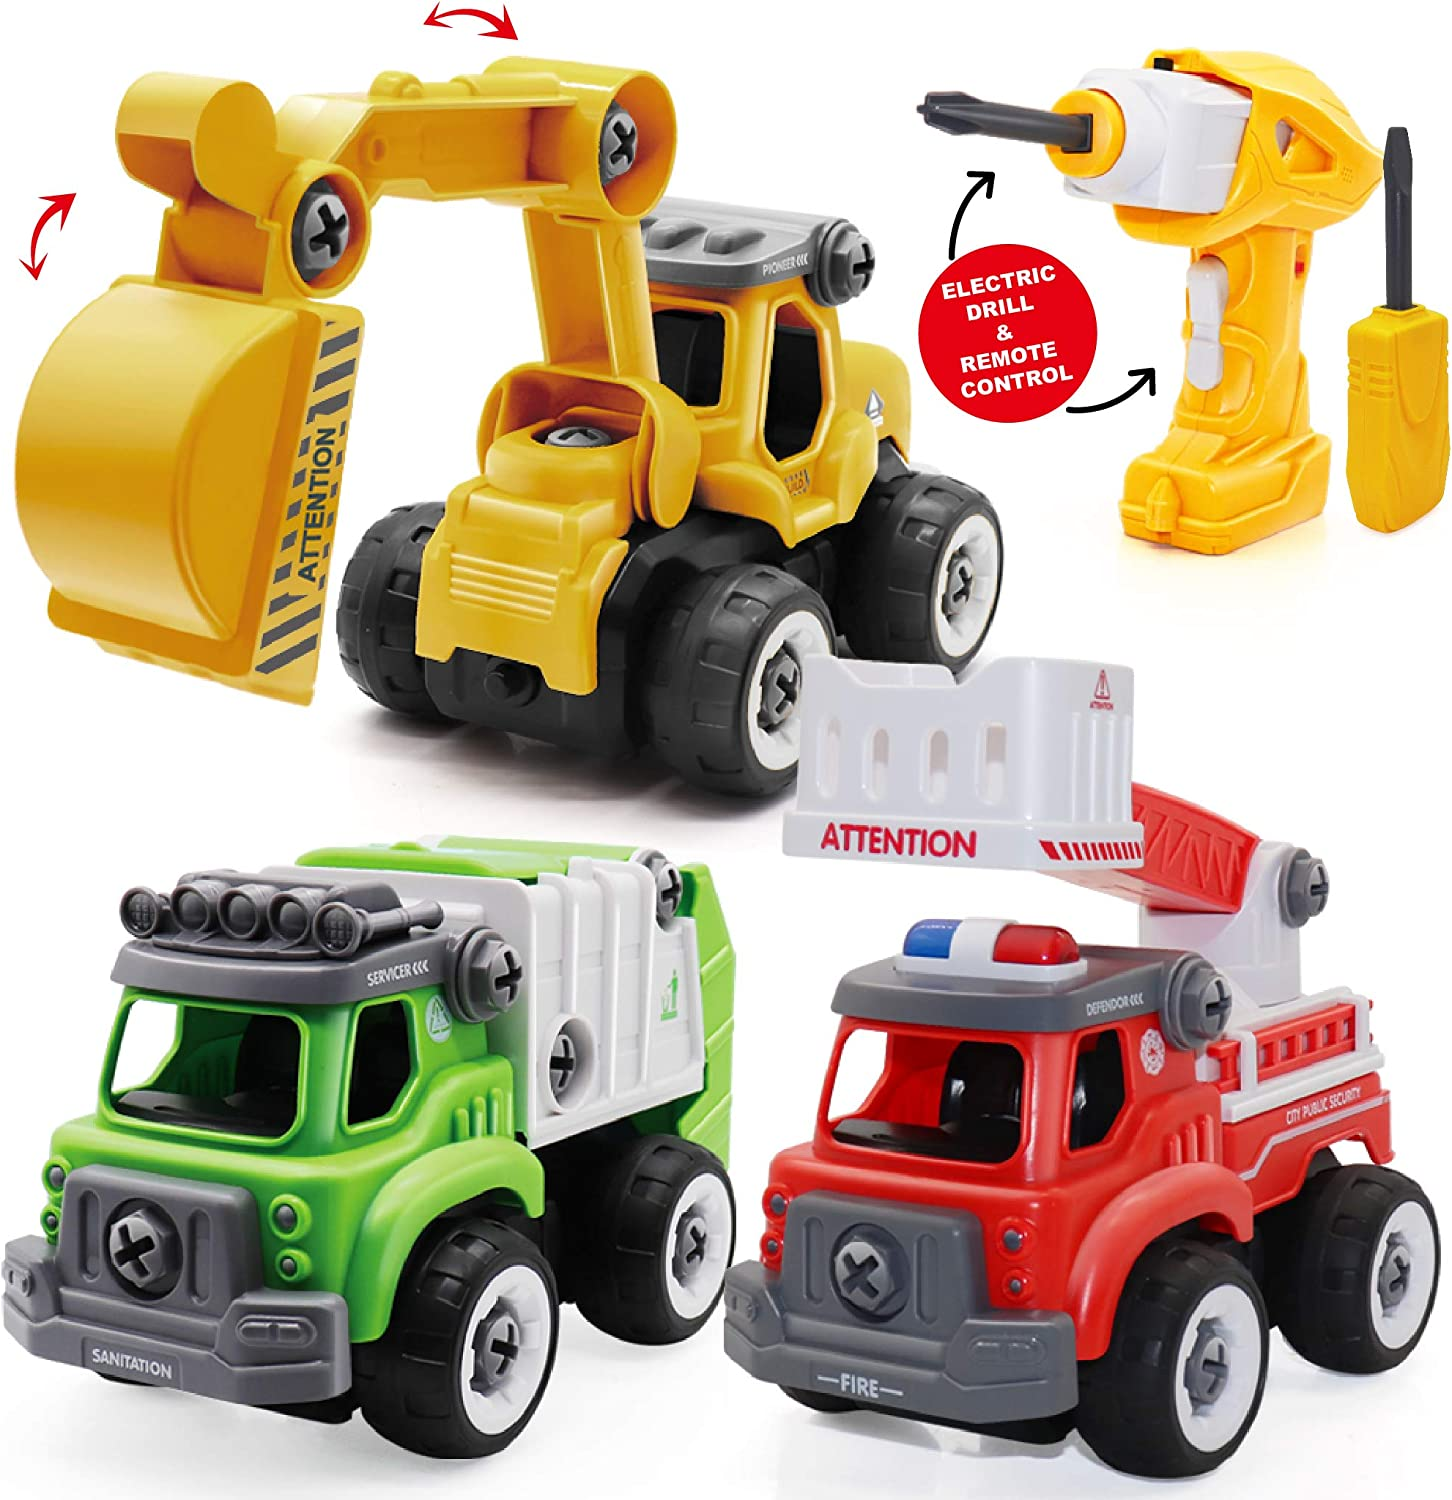 Take Apart Toys for Boys and Electric Sales results No. 1 Girls Drill Quality inspection 3-in-1 R with